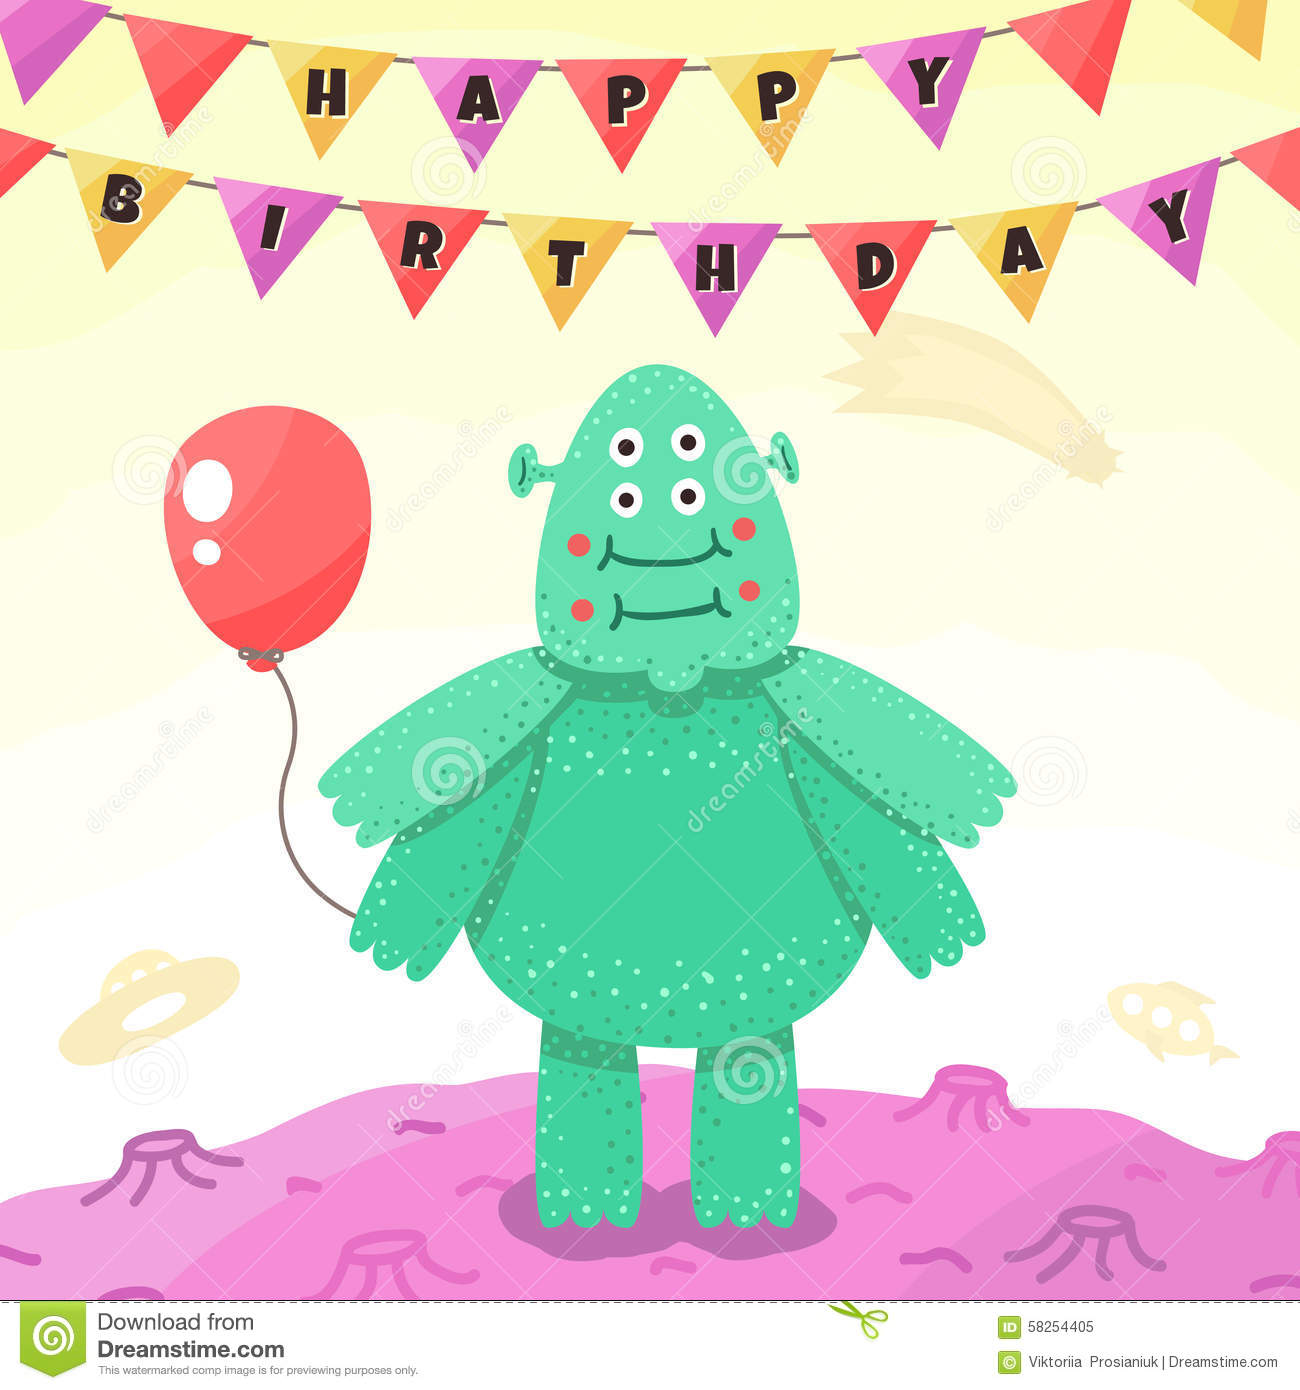 birthday-party-funny-space-greeting-card